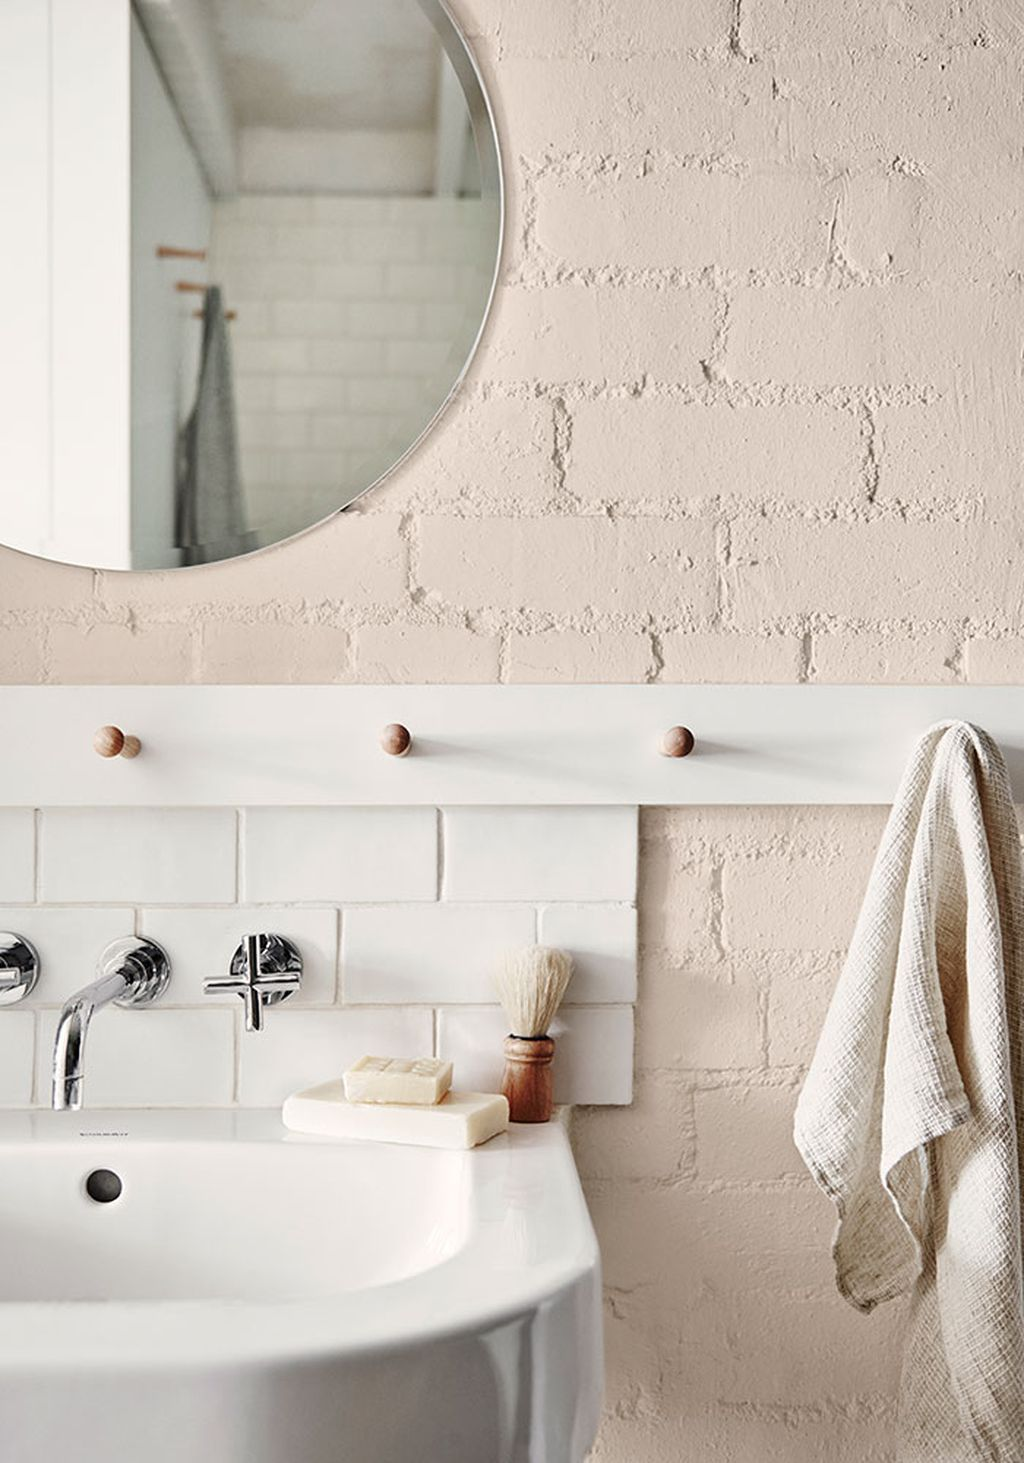 20+ White Brick Wall Ideas to Change your Room Look Great | Subway ...